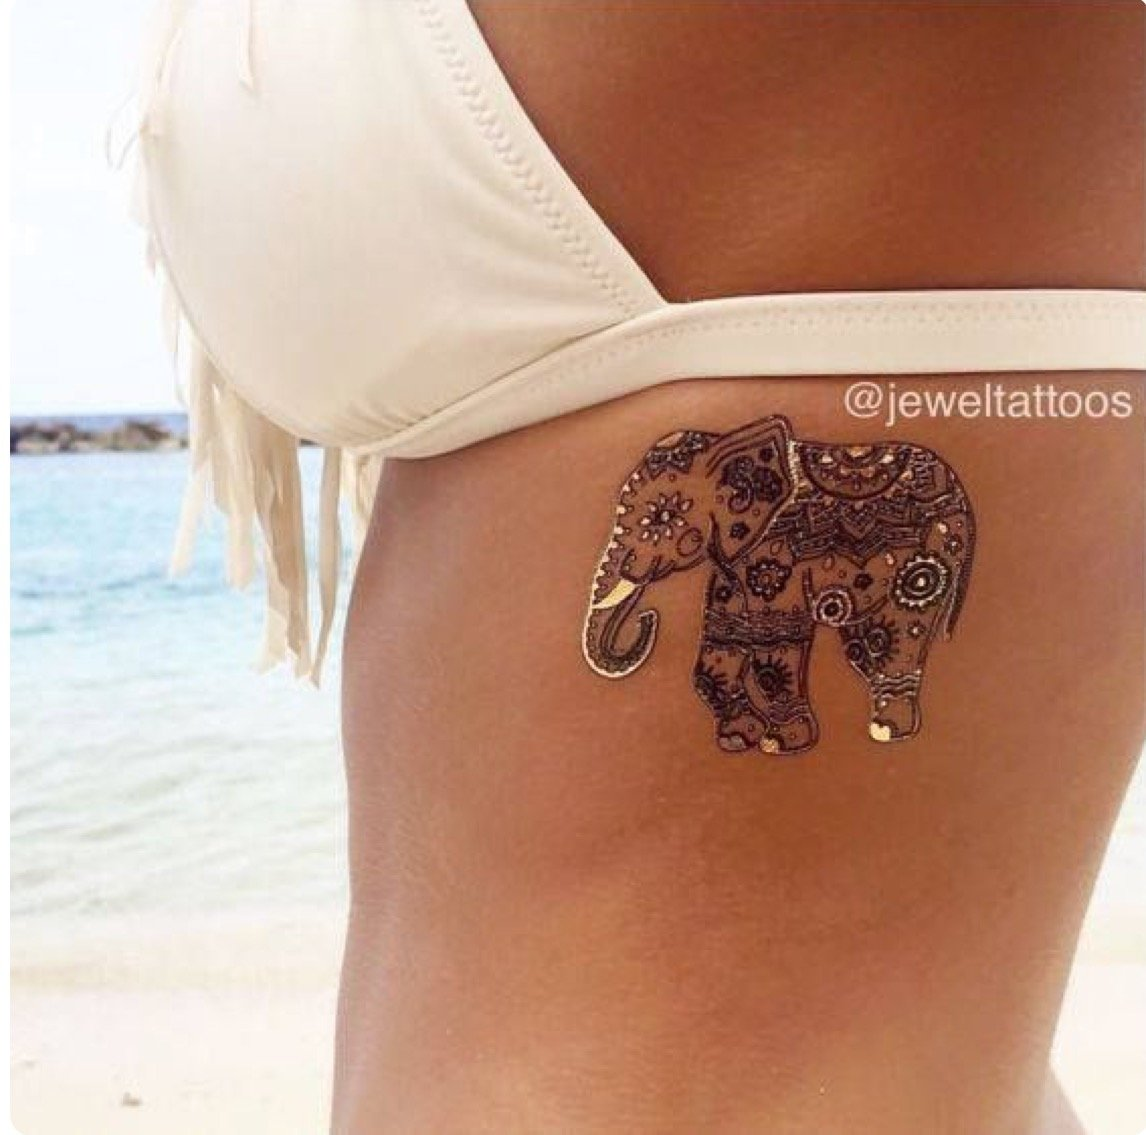 101 elephant tattoo designs that youll never forget